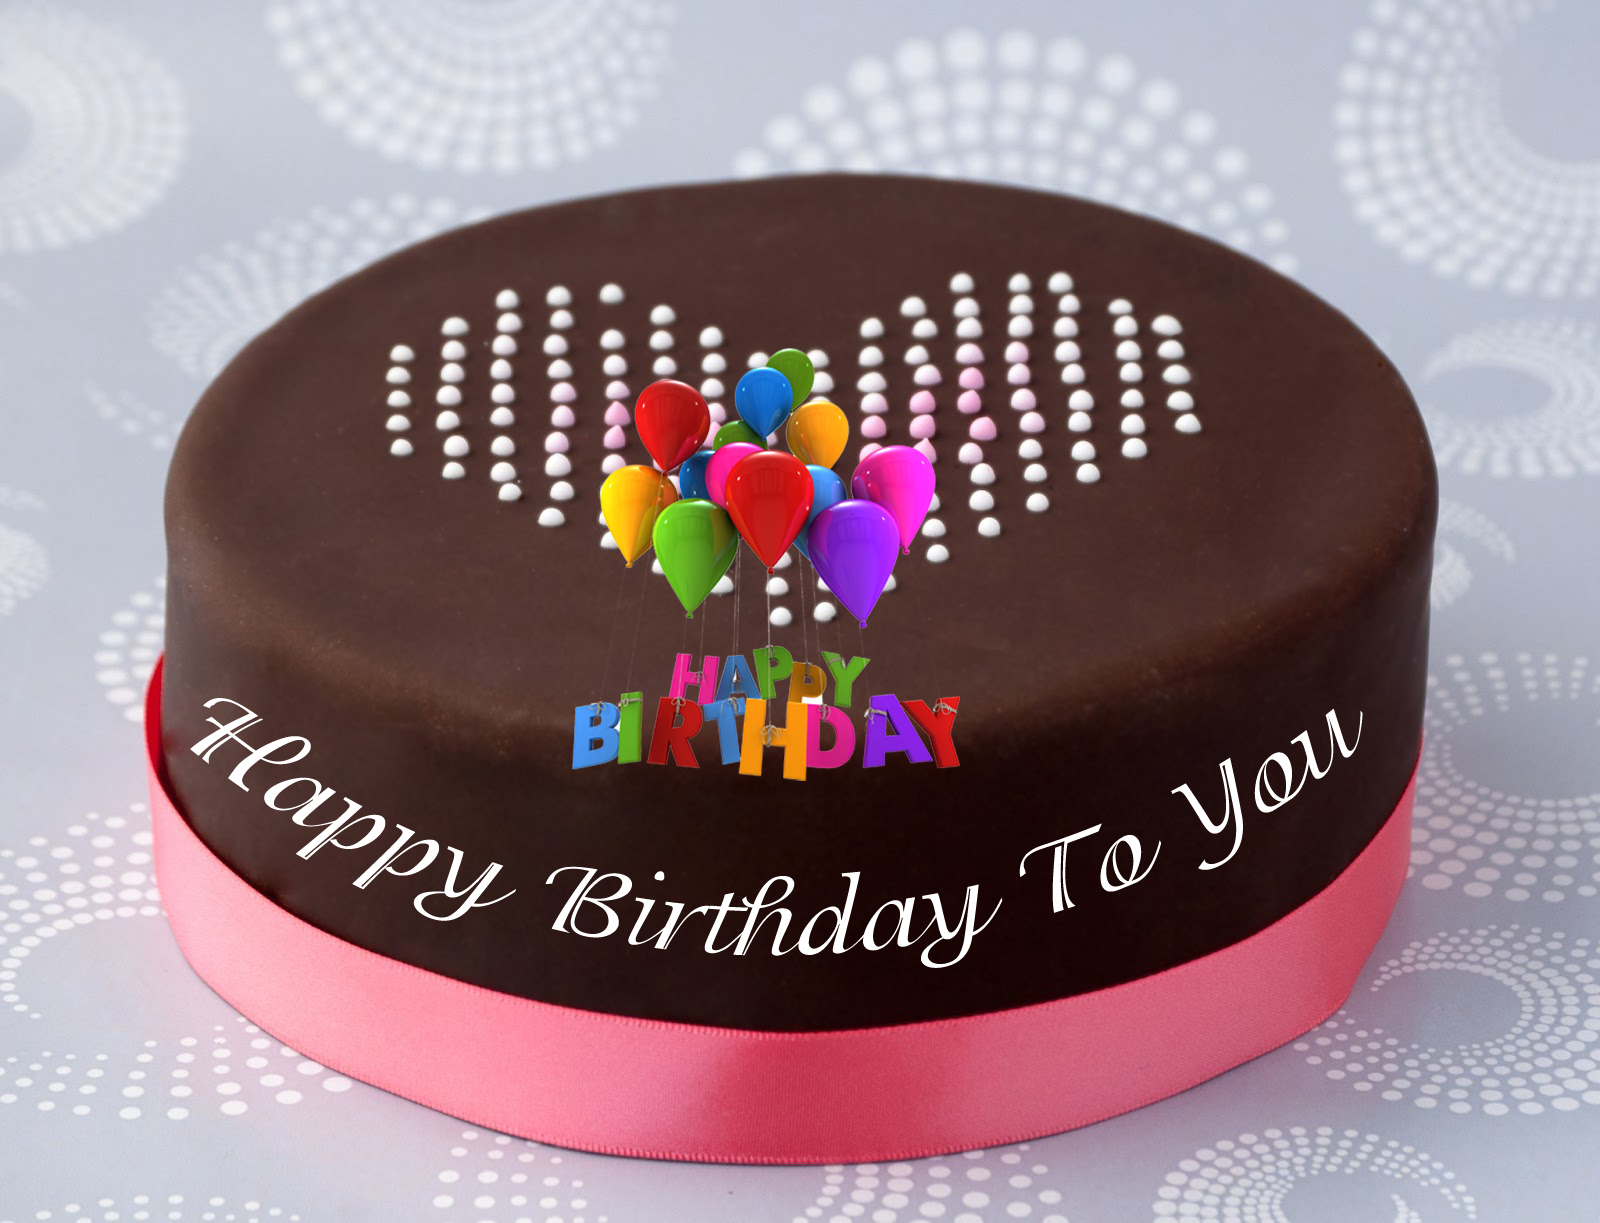 Heartfelt Birthday Wishes to Wish Your Friend a Happy Birthday 2